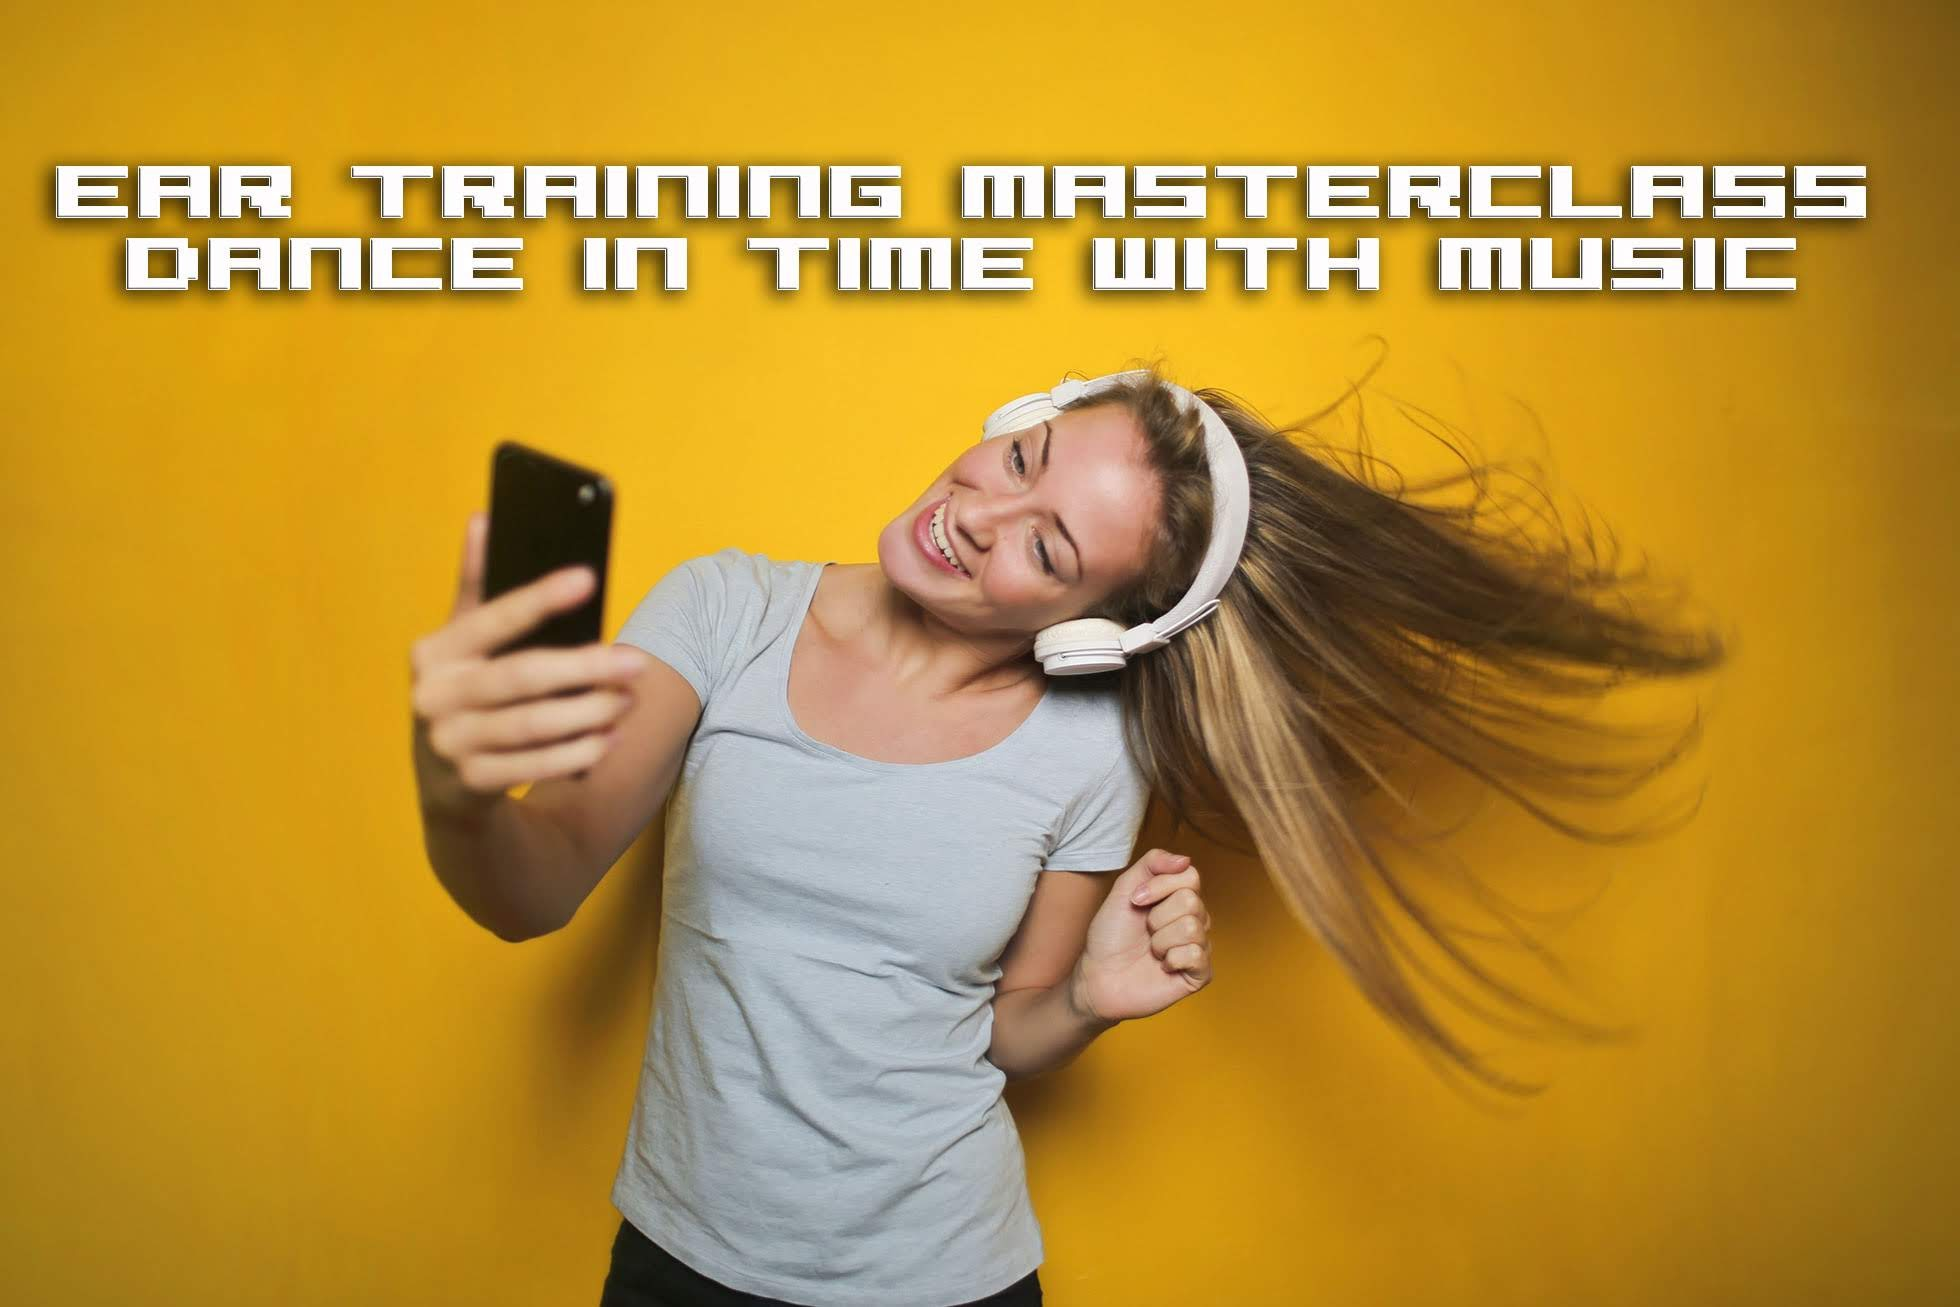 Masterclass ear training - Salsa Lesson Bachata Course Tools Updated